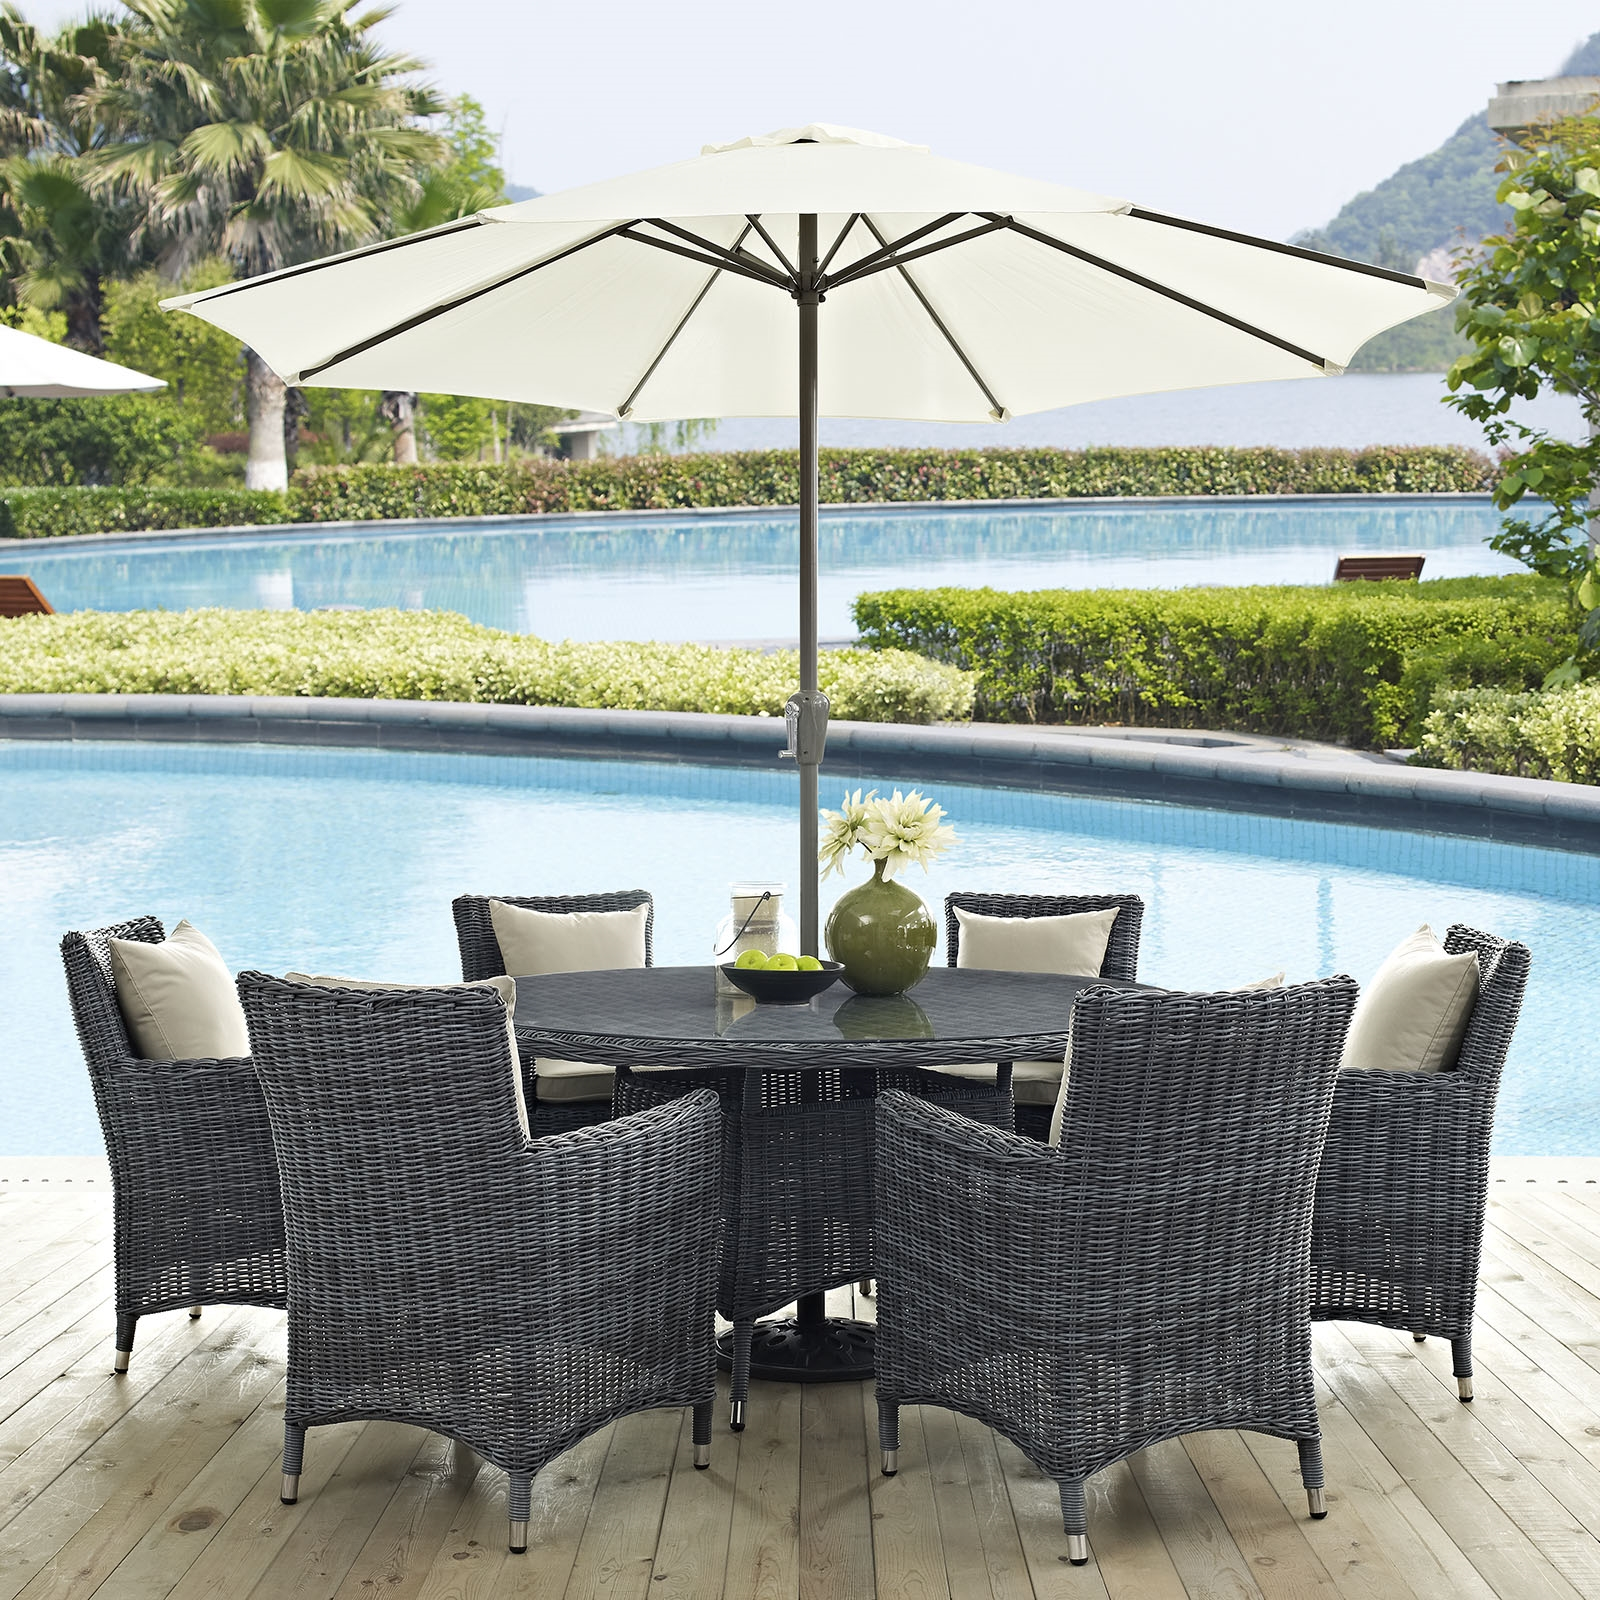 Summon 8 Piece Outdoor Patio Sunbrella® Dining Set in Antique Canvas Beige